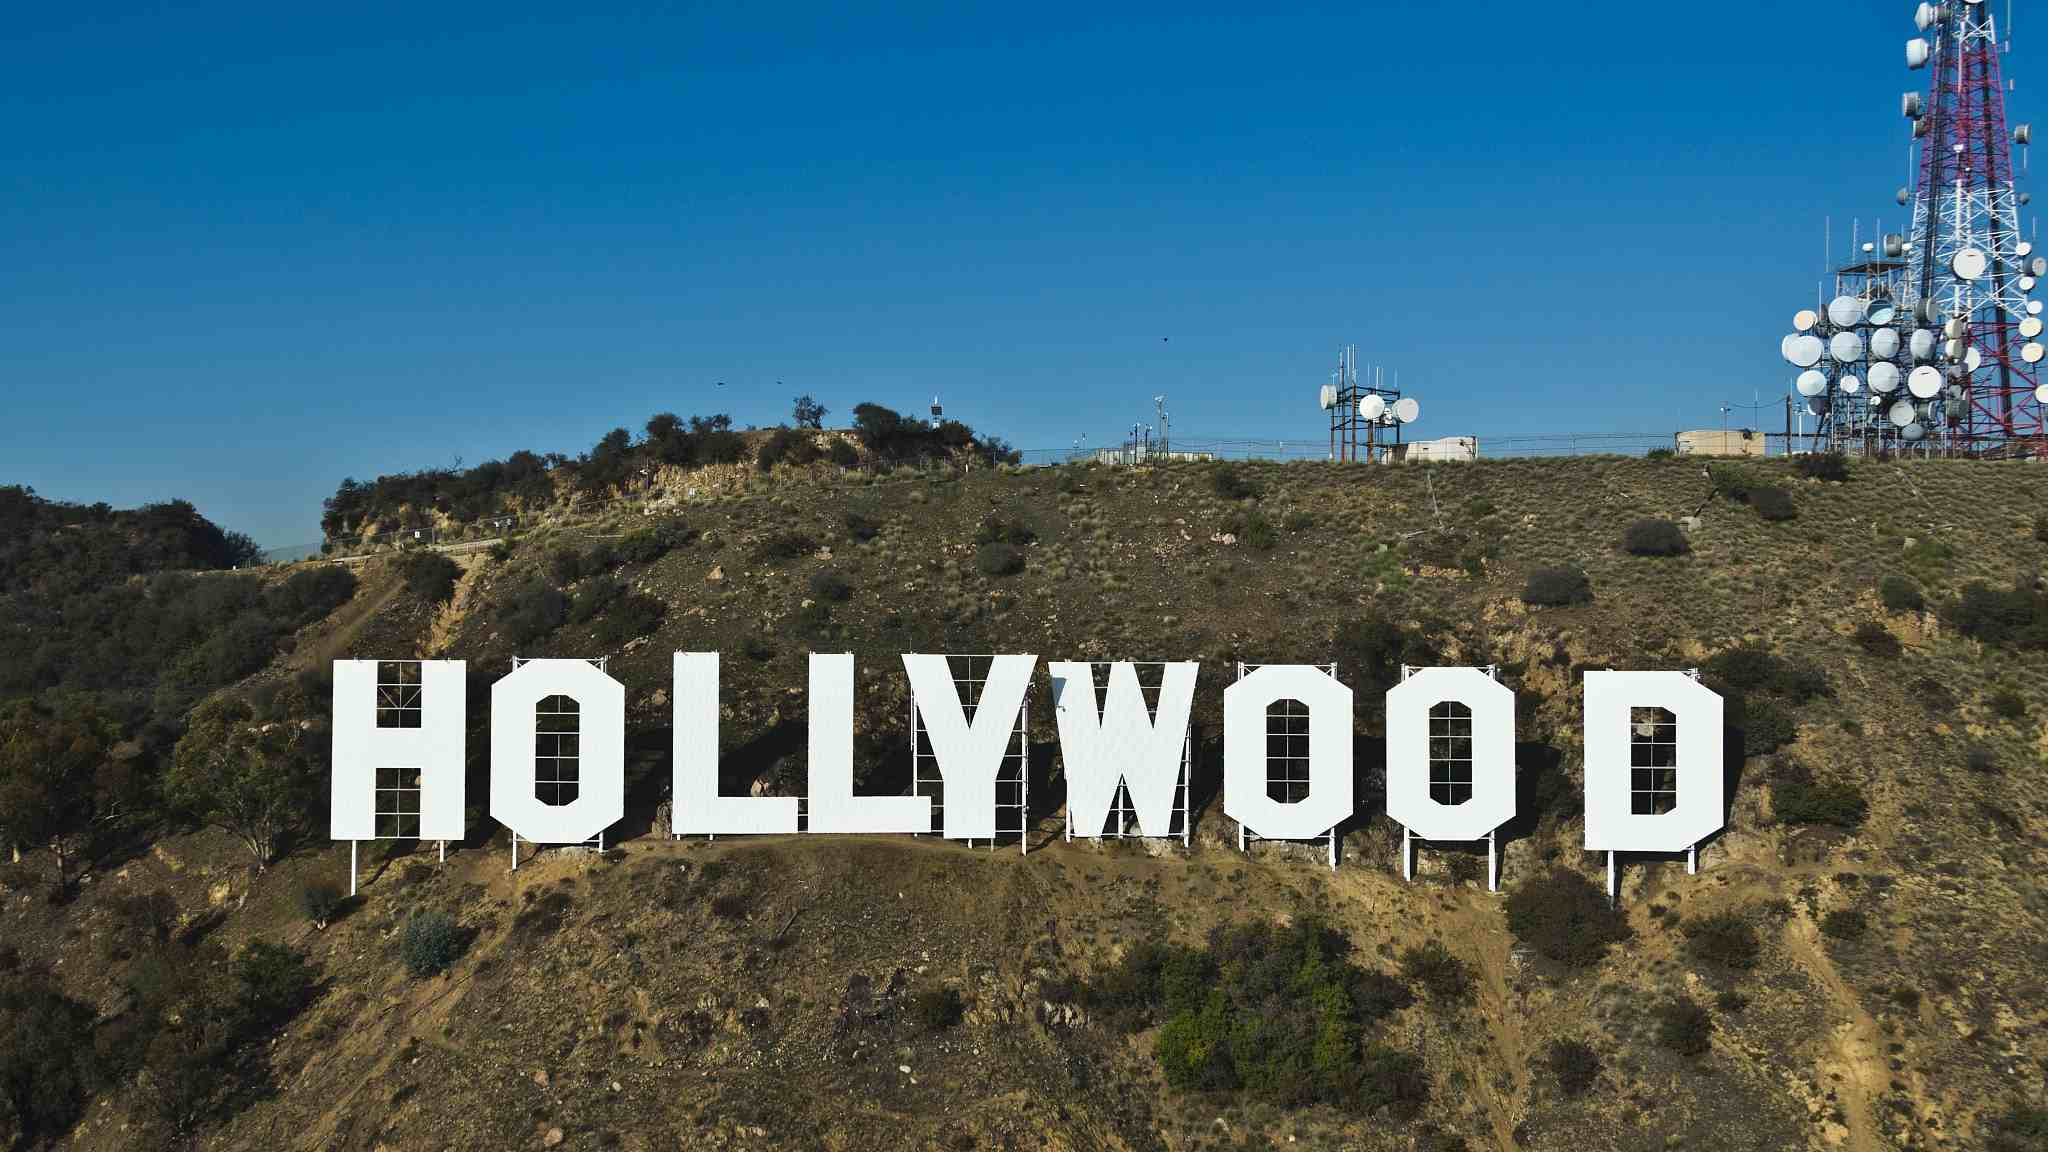 Warner Bros. plans US$100 mln cable car to Hollywood sign